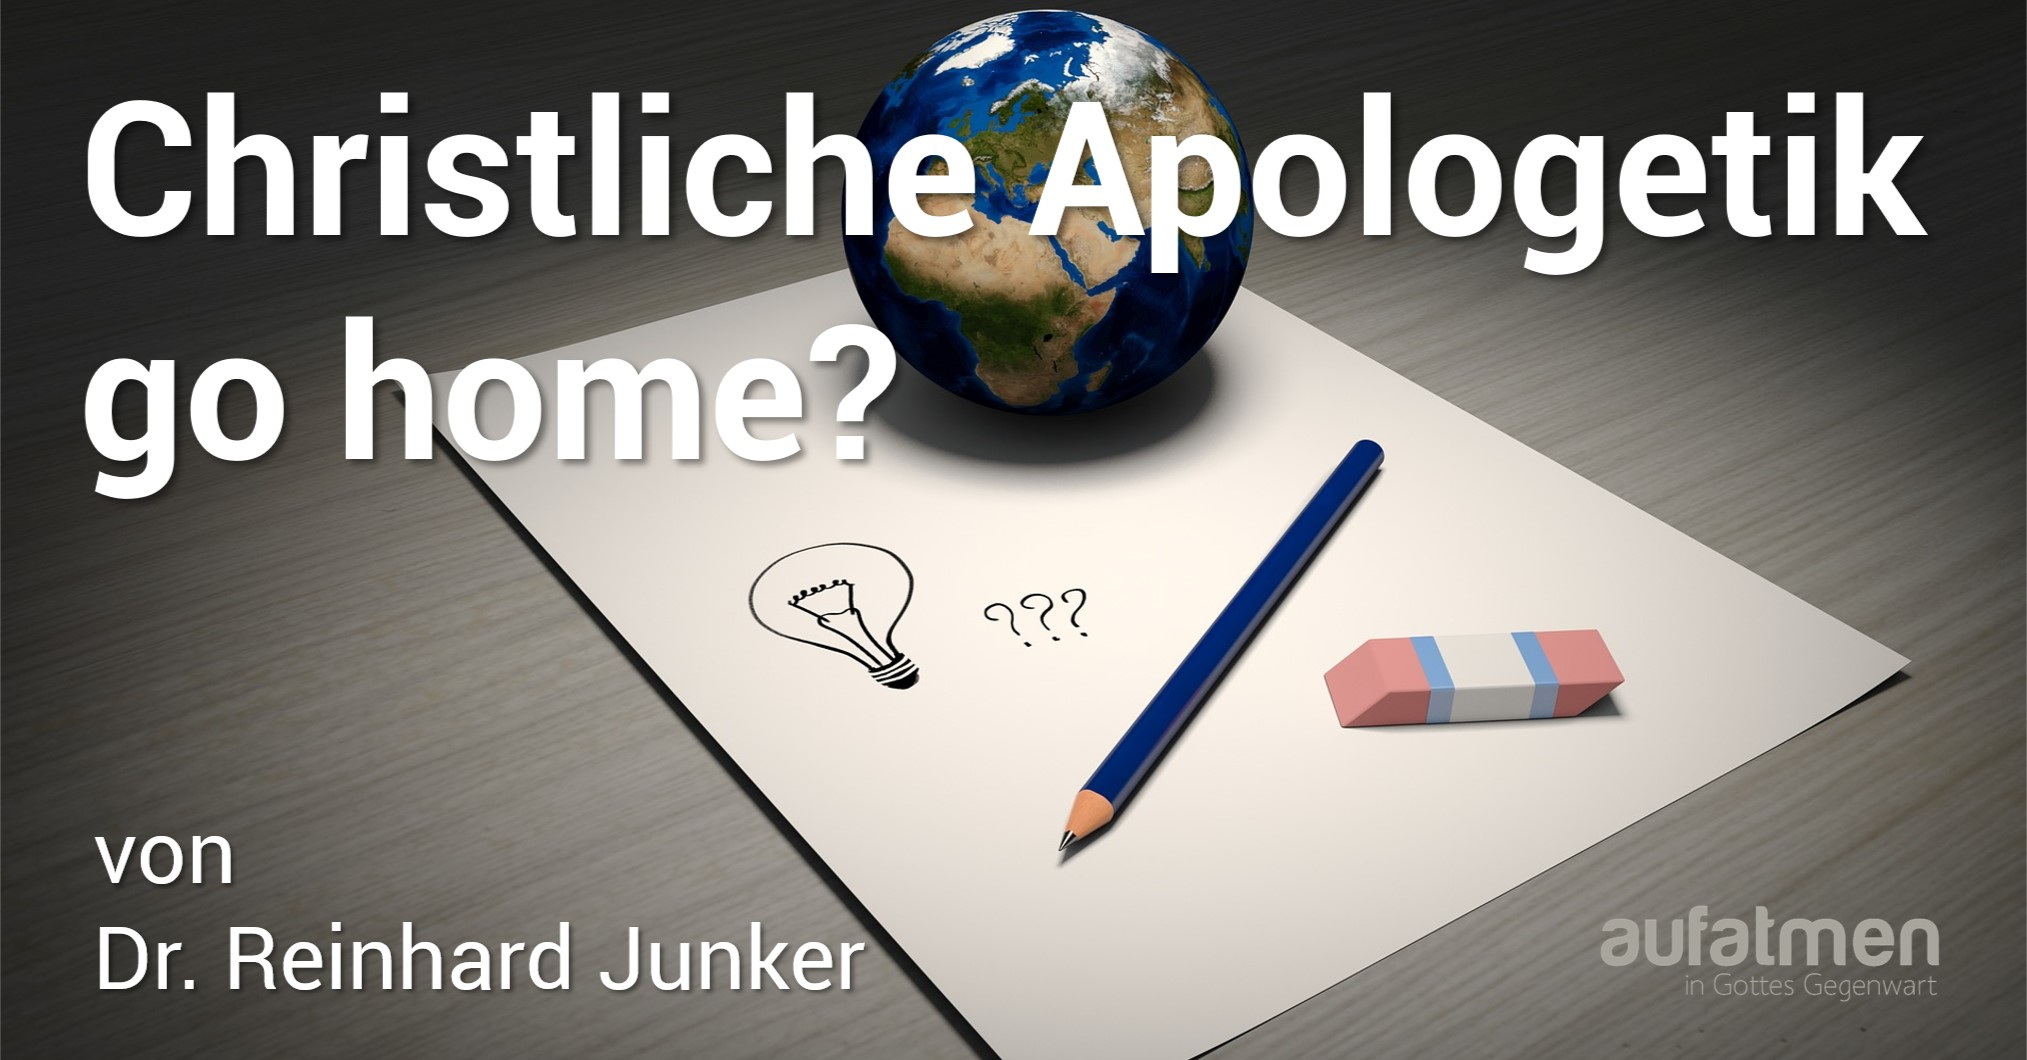 Christliche Apologetik go home?